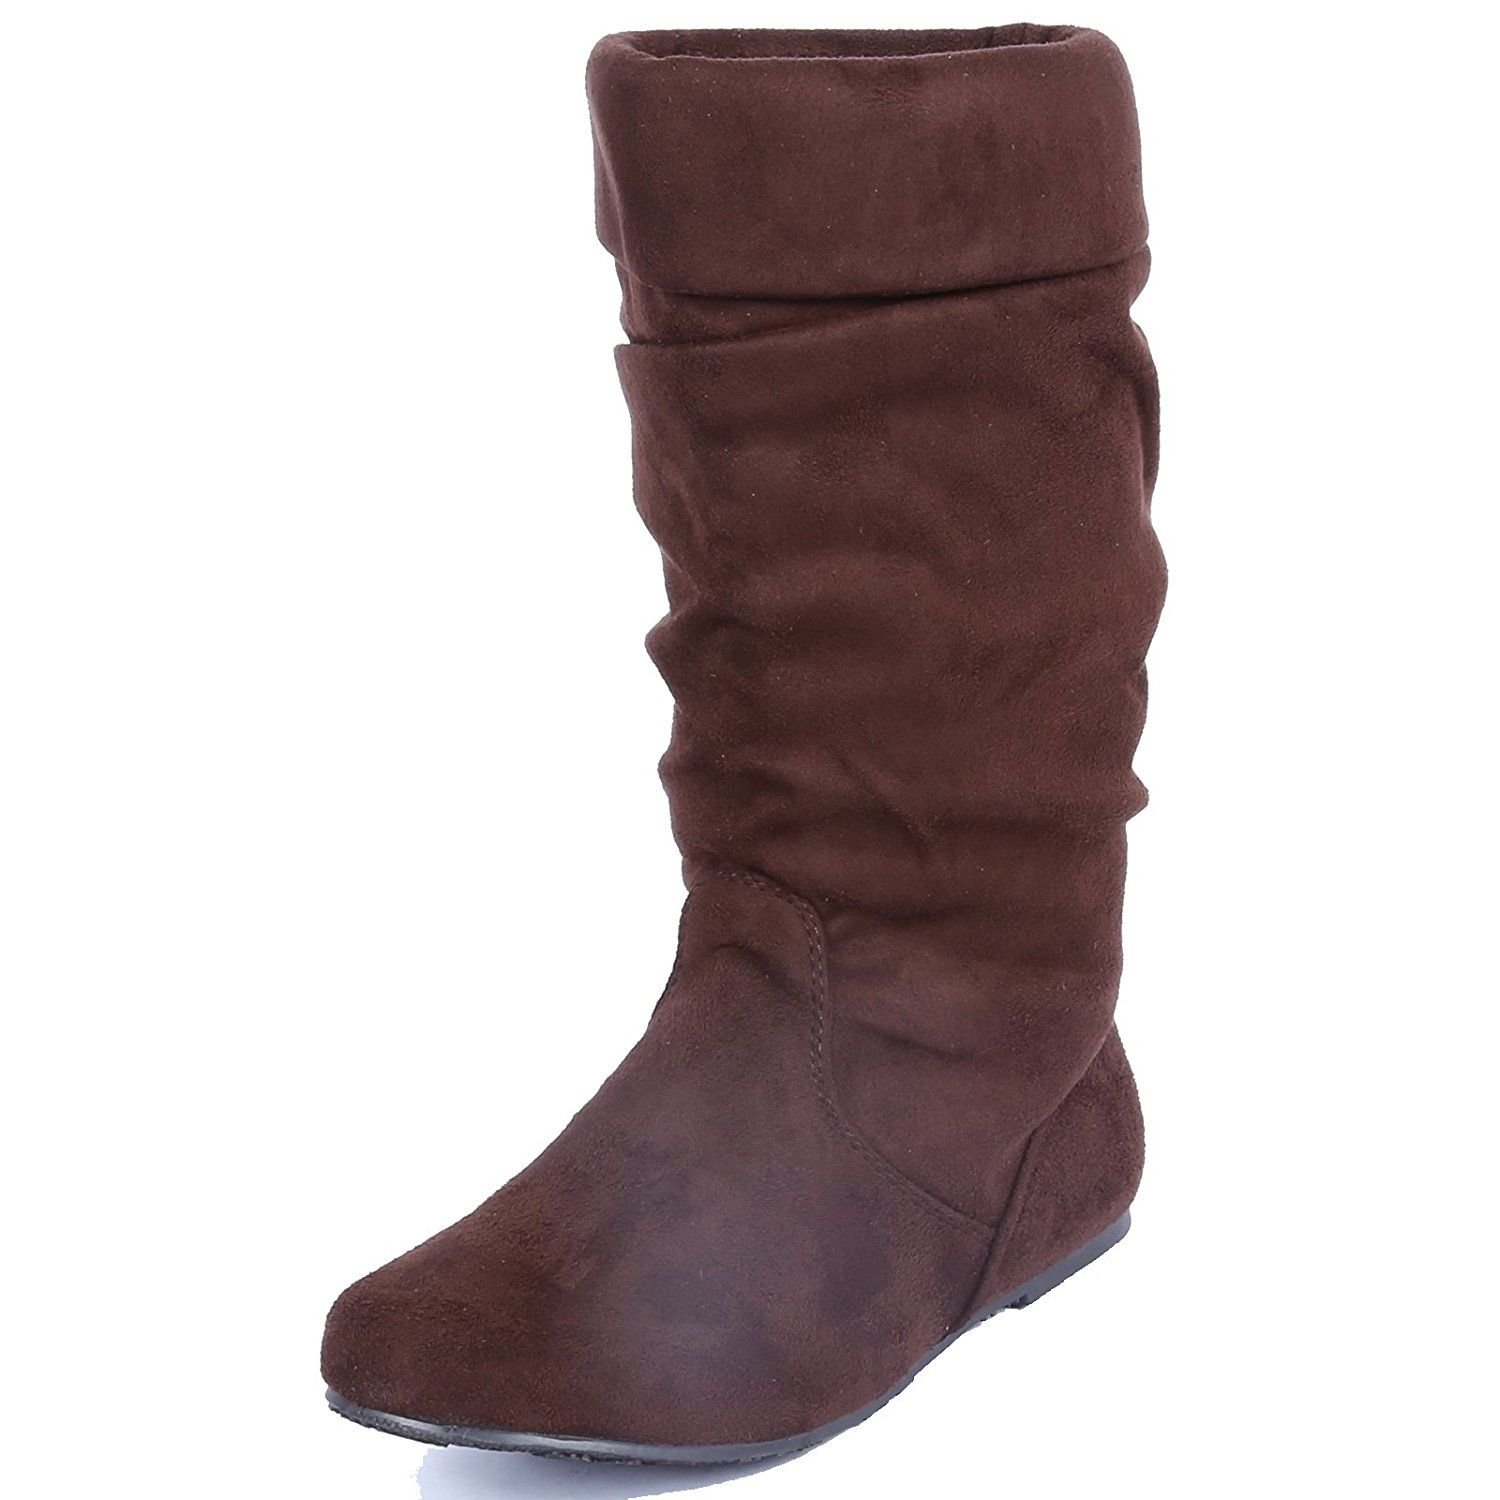 Women's Fashion Cozy Suede PU Fold Over Mid Calf Slouch Boots